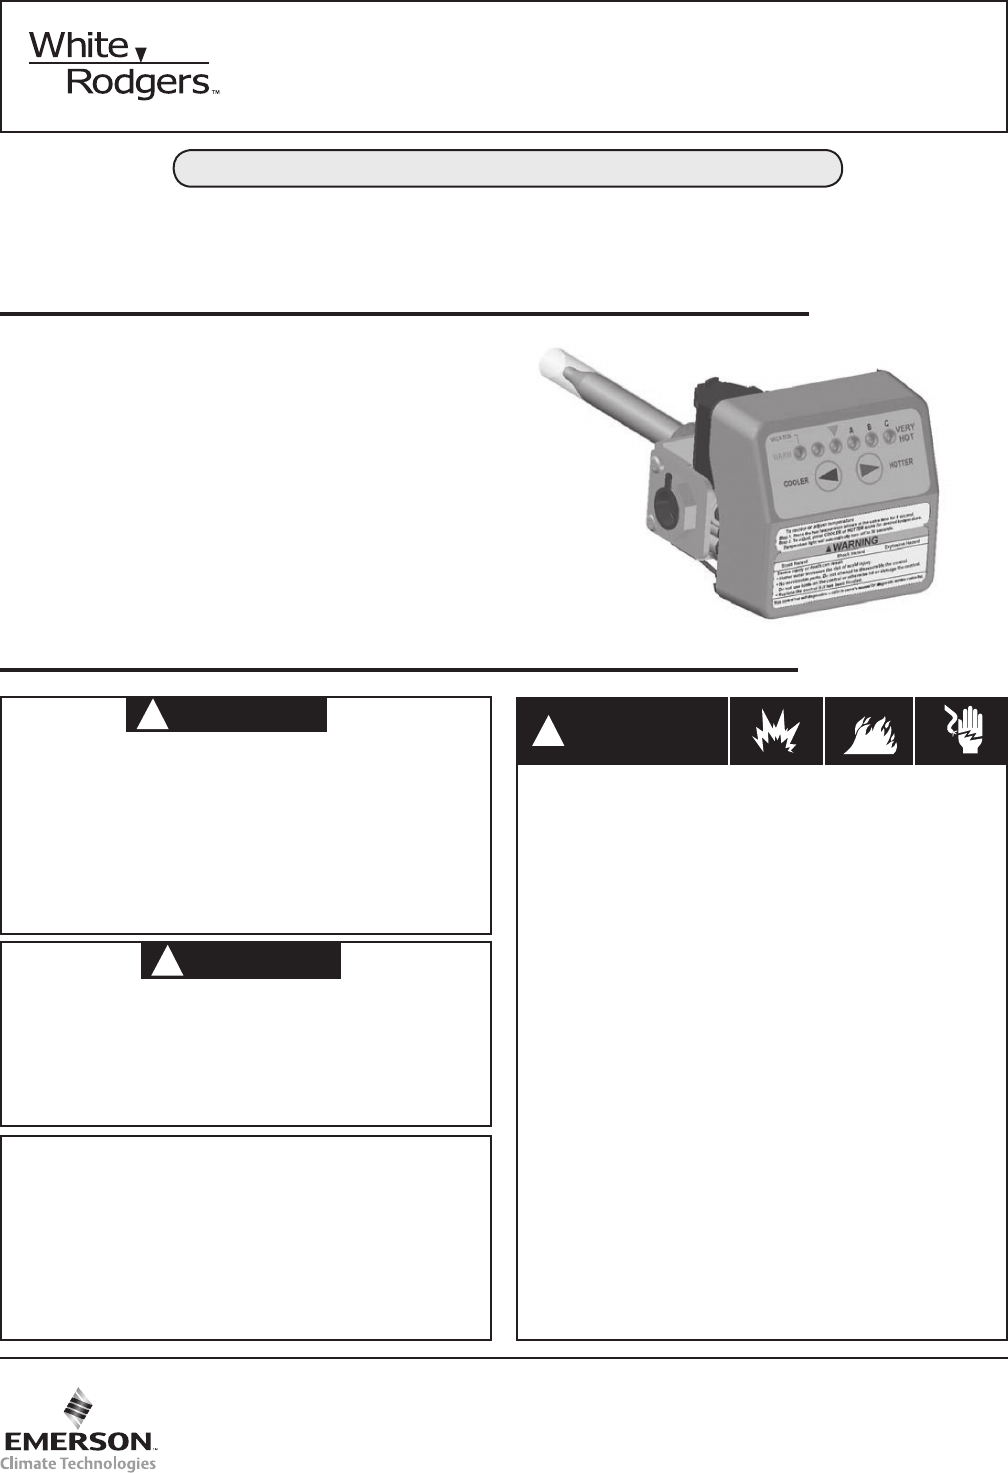 White Rodgers Thermostat Wiring On Emerson Thermostat Wiring Diagram